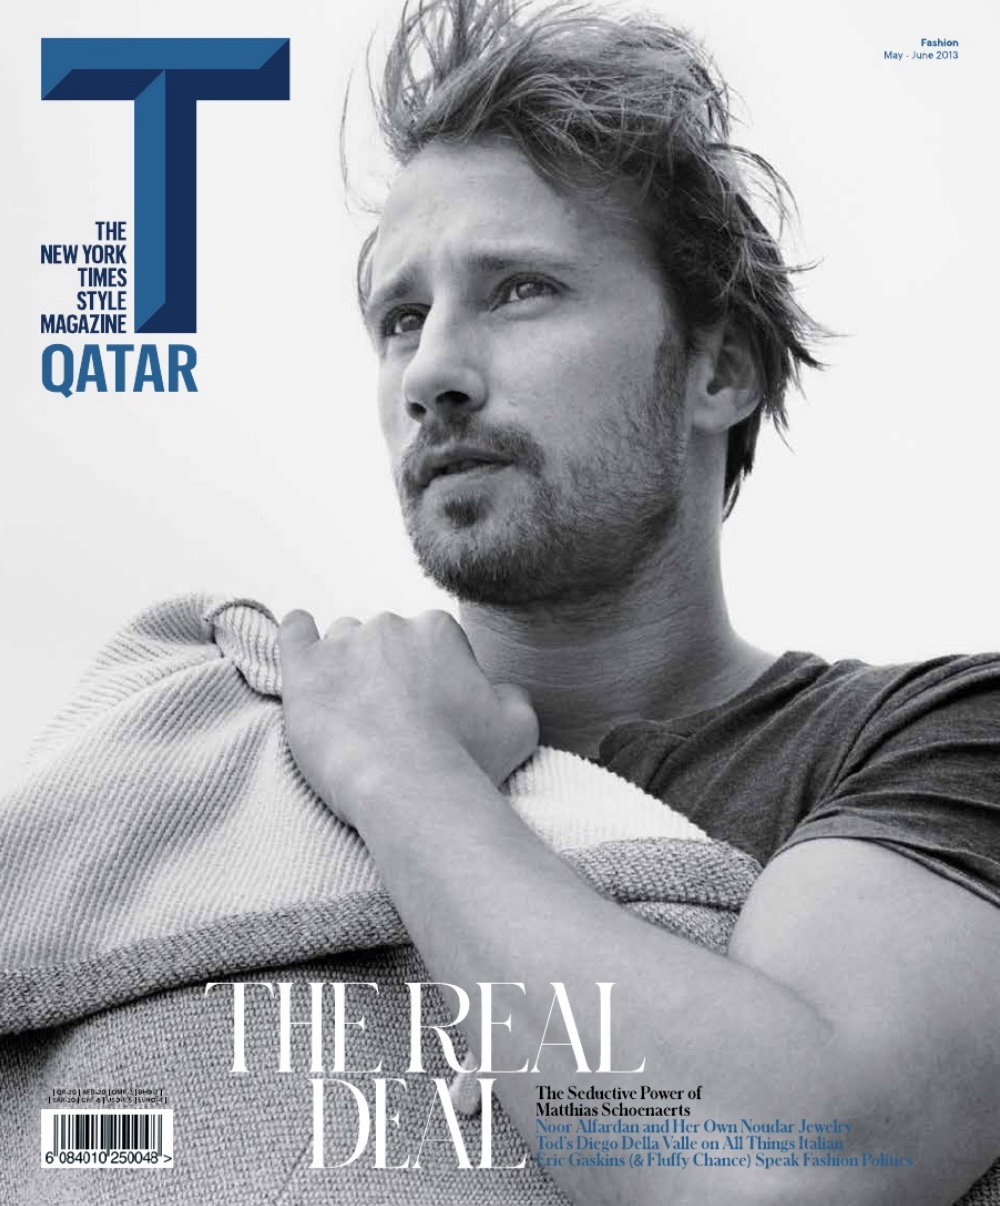 The New York Times Style Magazine  Interview of Emanuela's inspiration trip to Doha, Qatar.